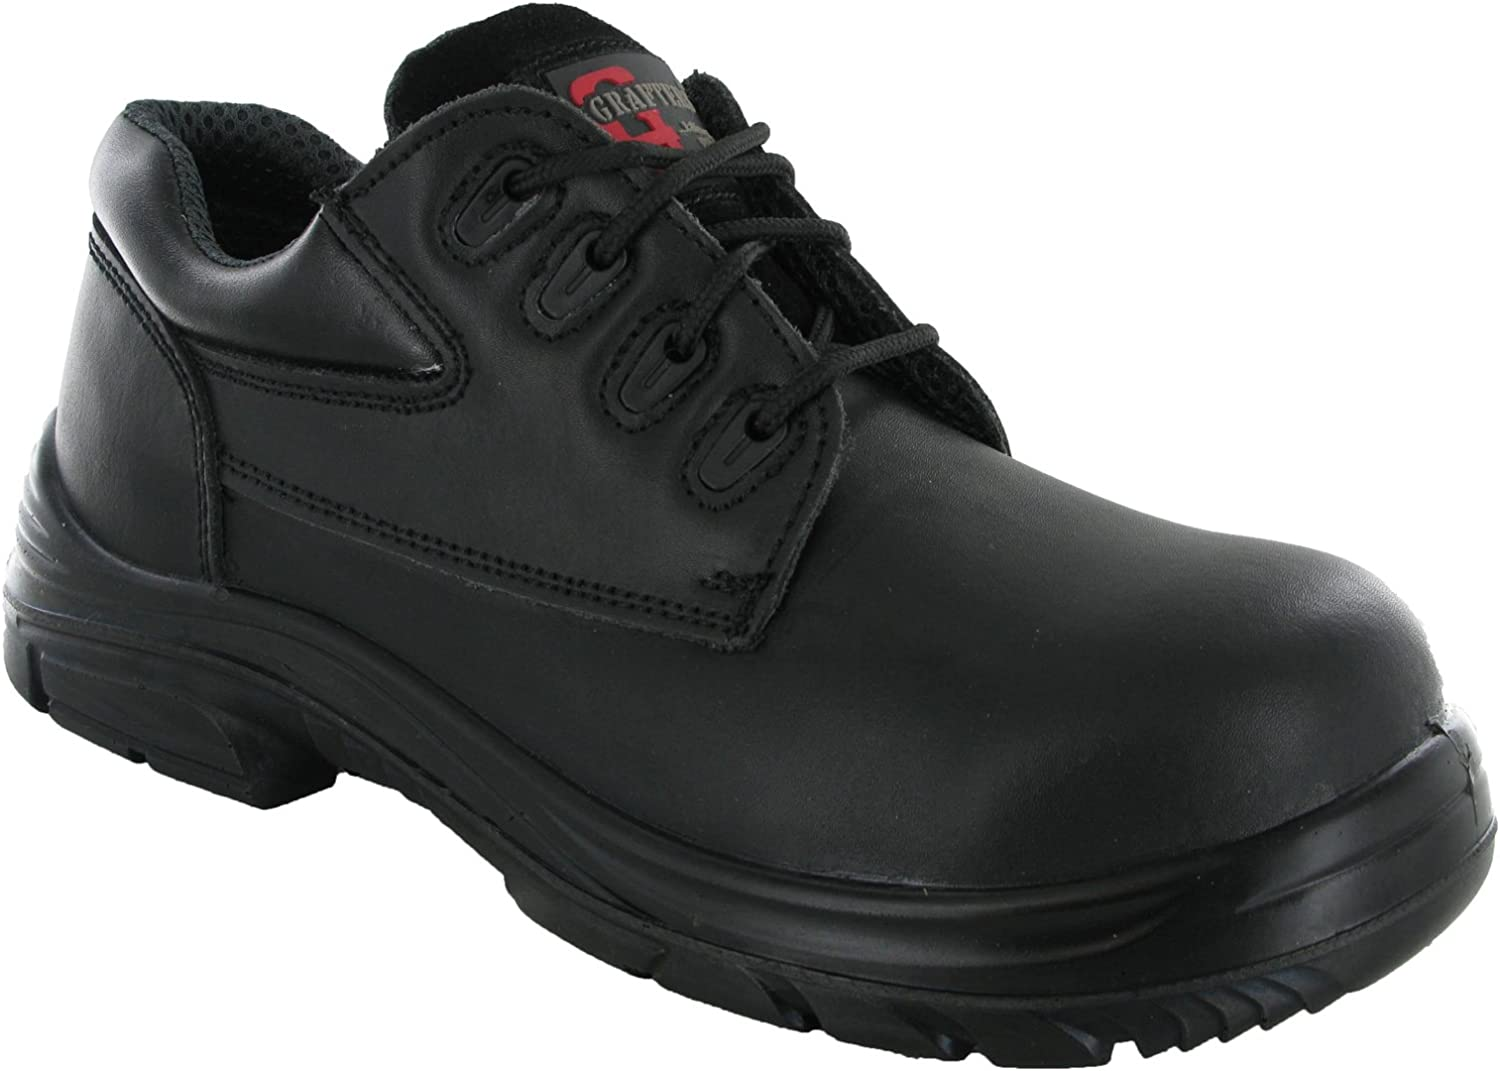 grafters wide fitting safety shoes